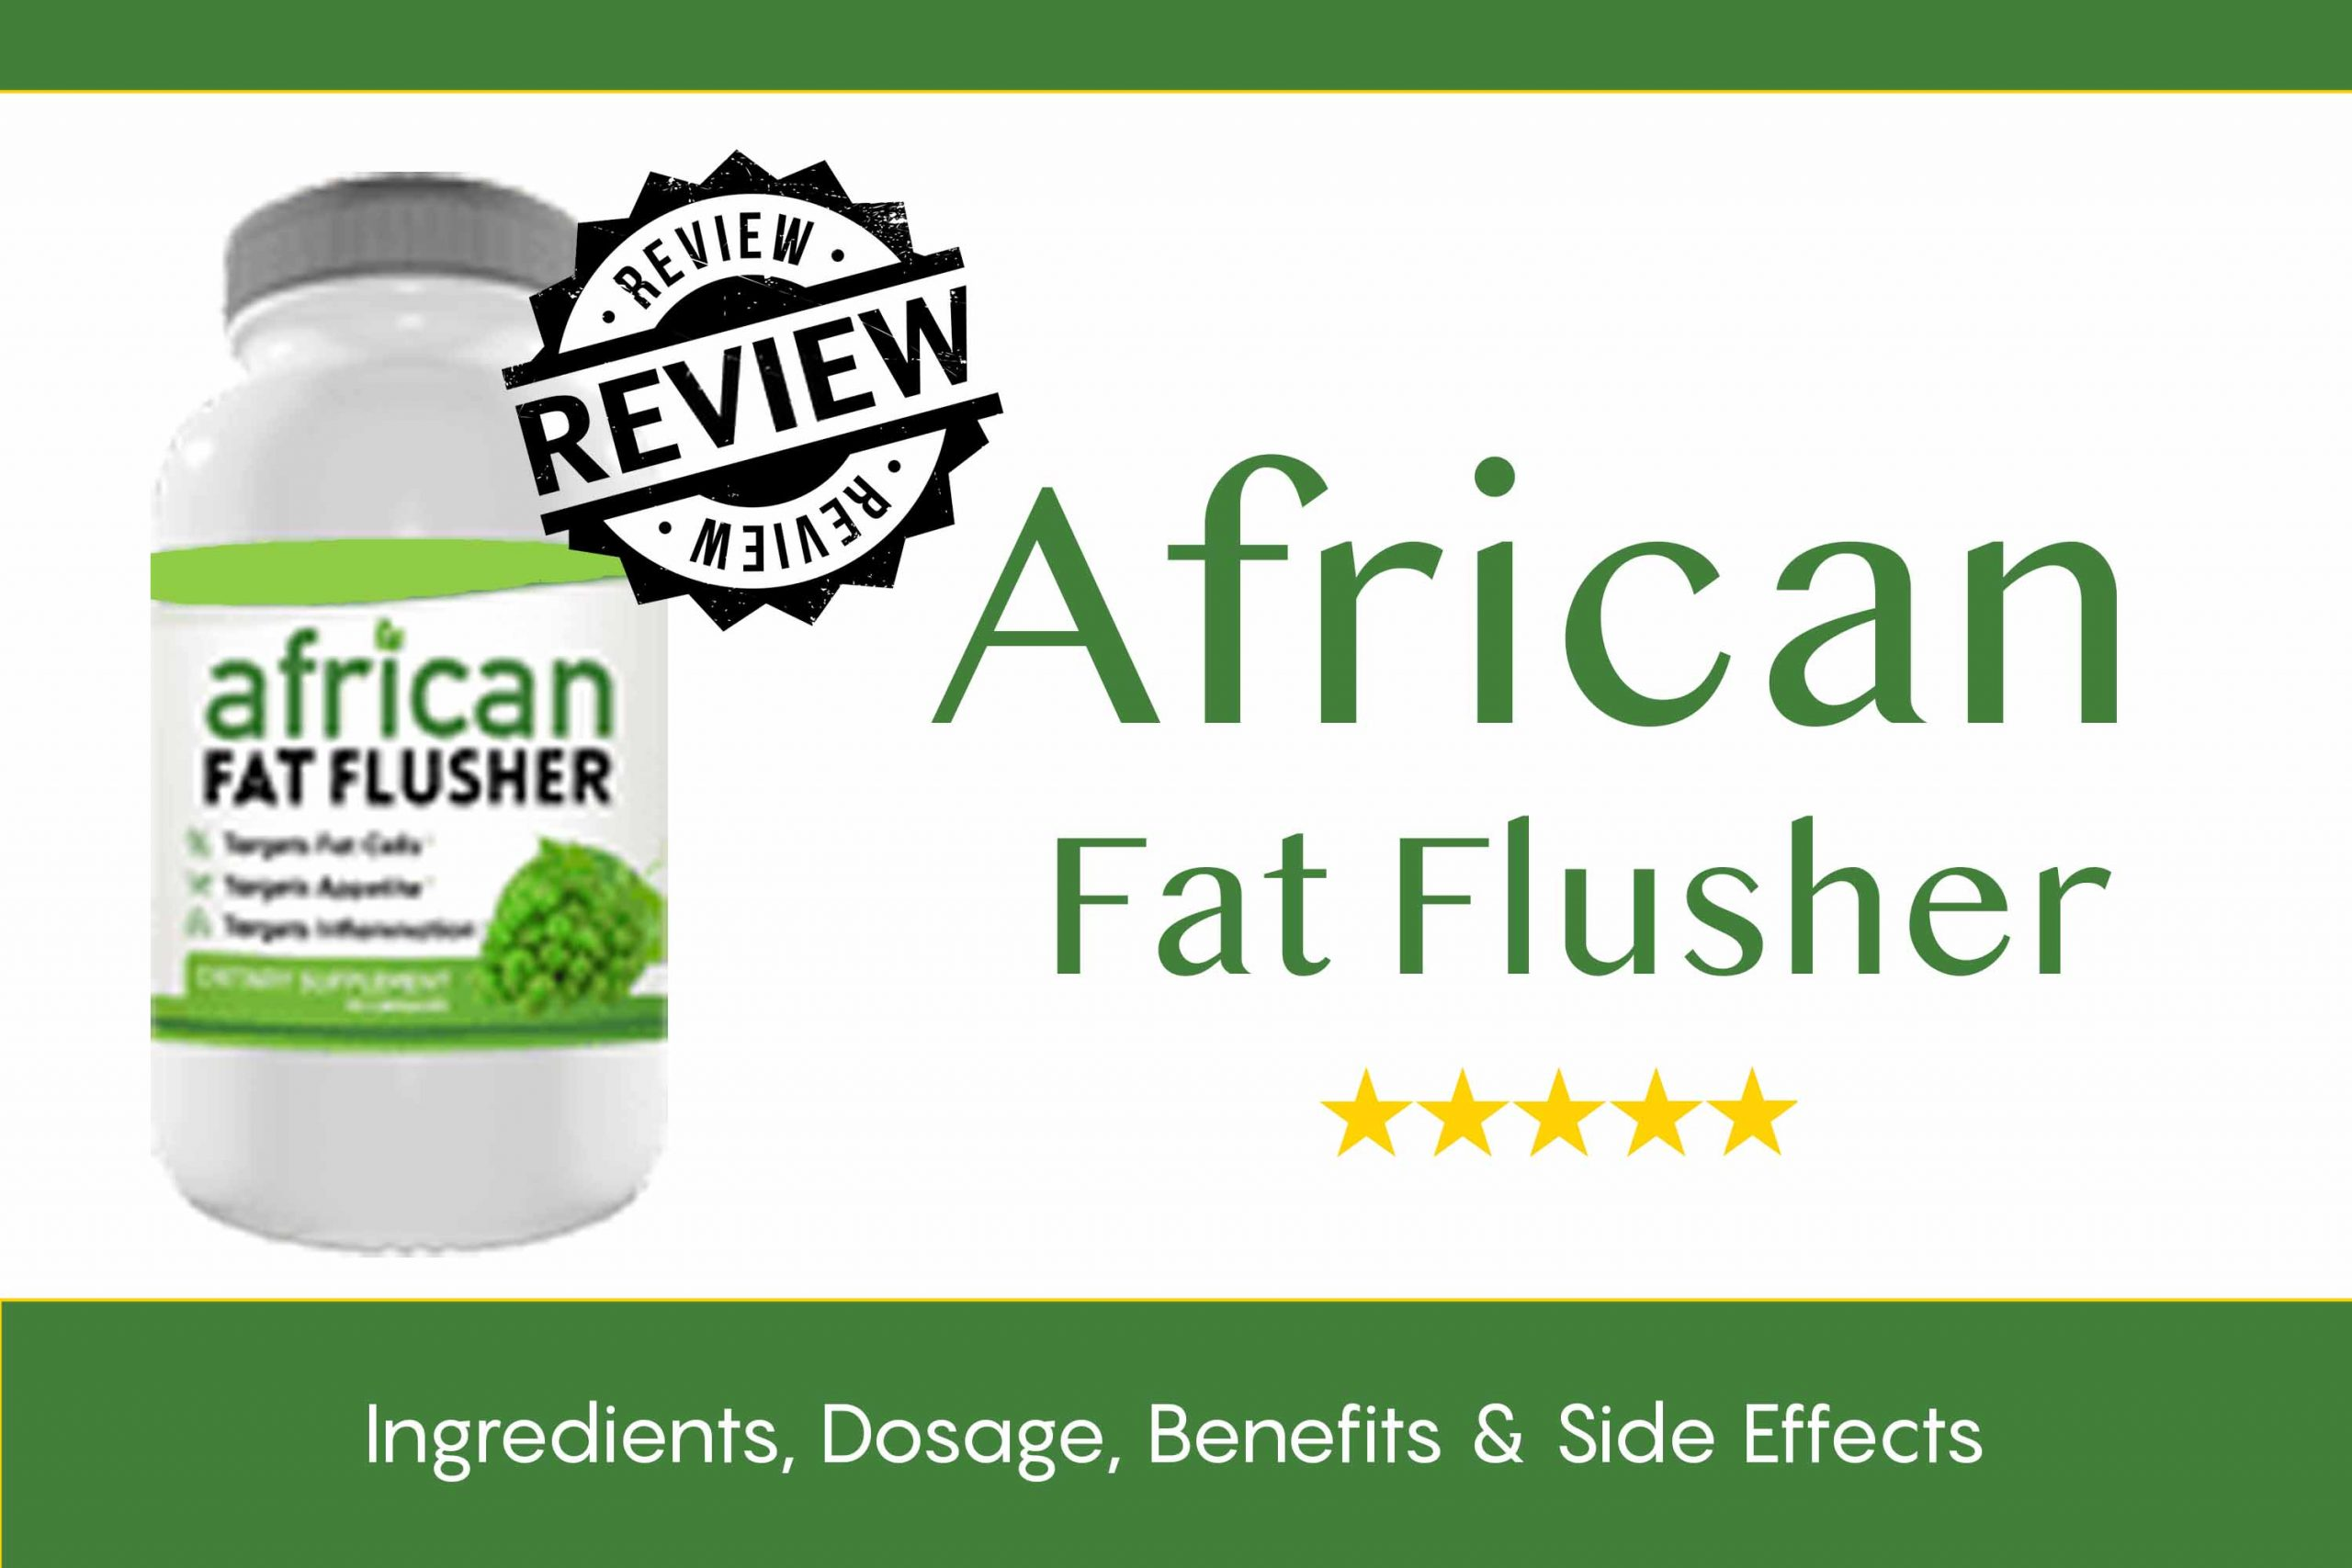 African Fat Flusher Diet